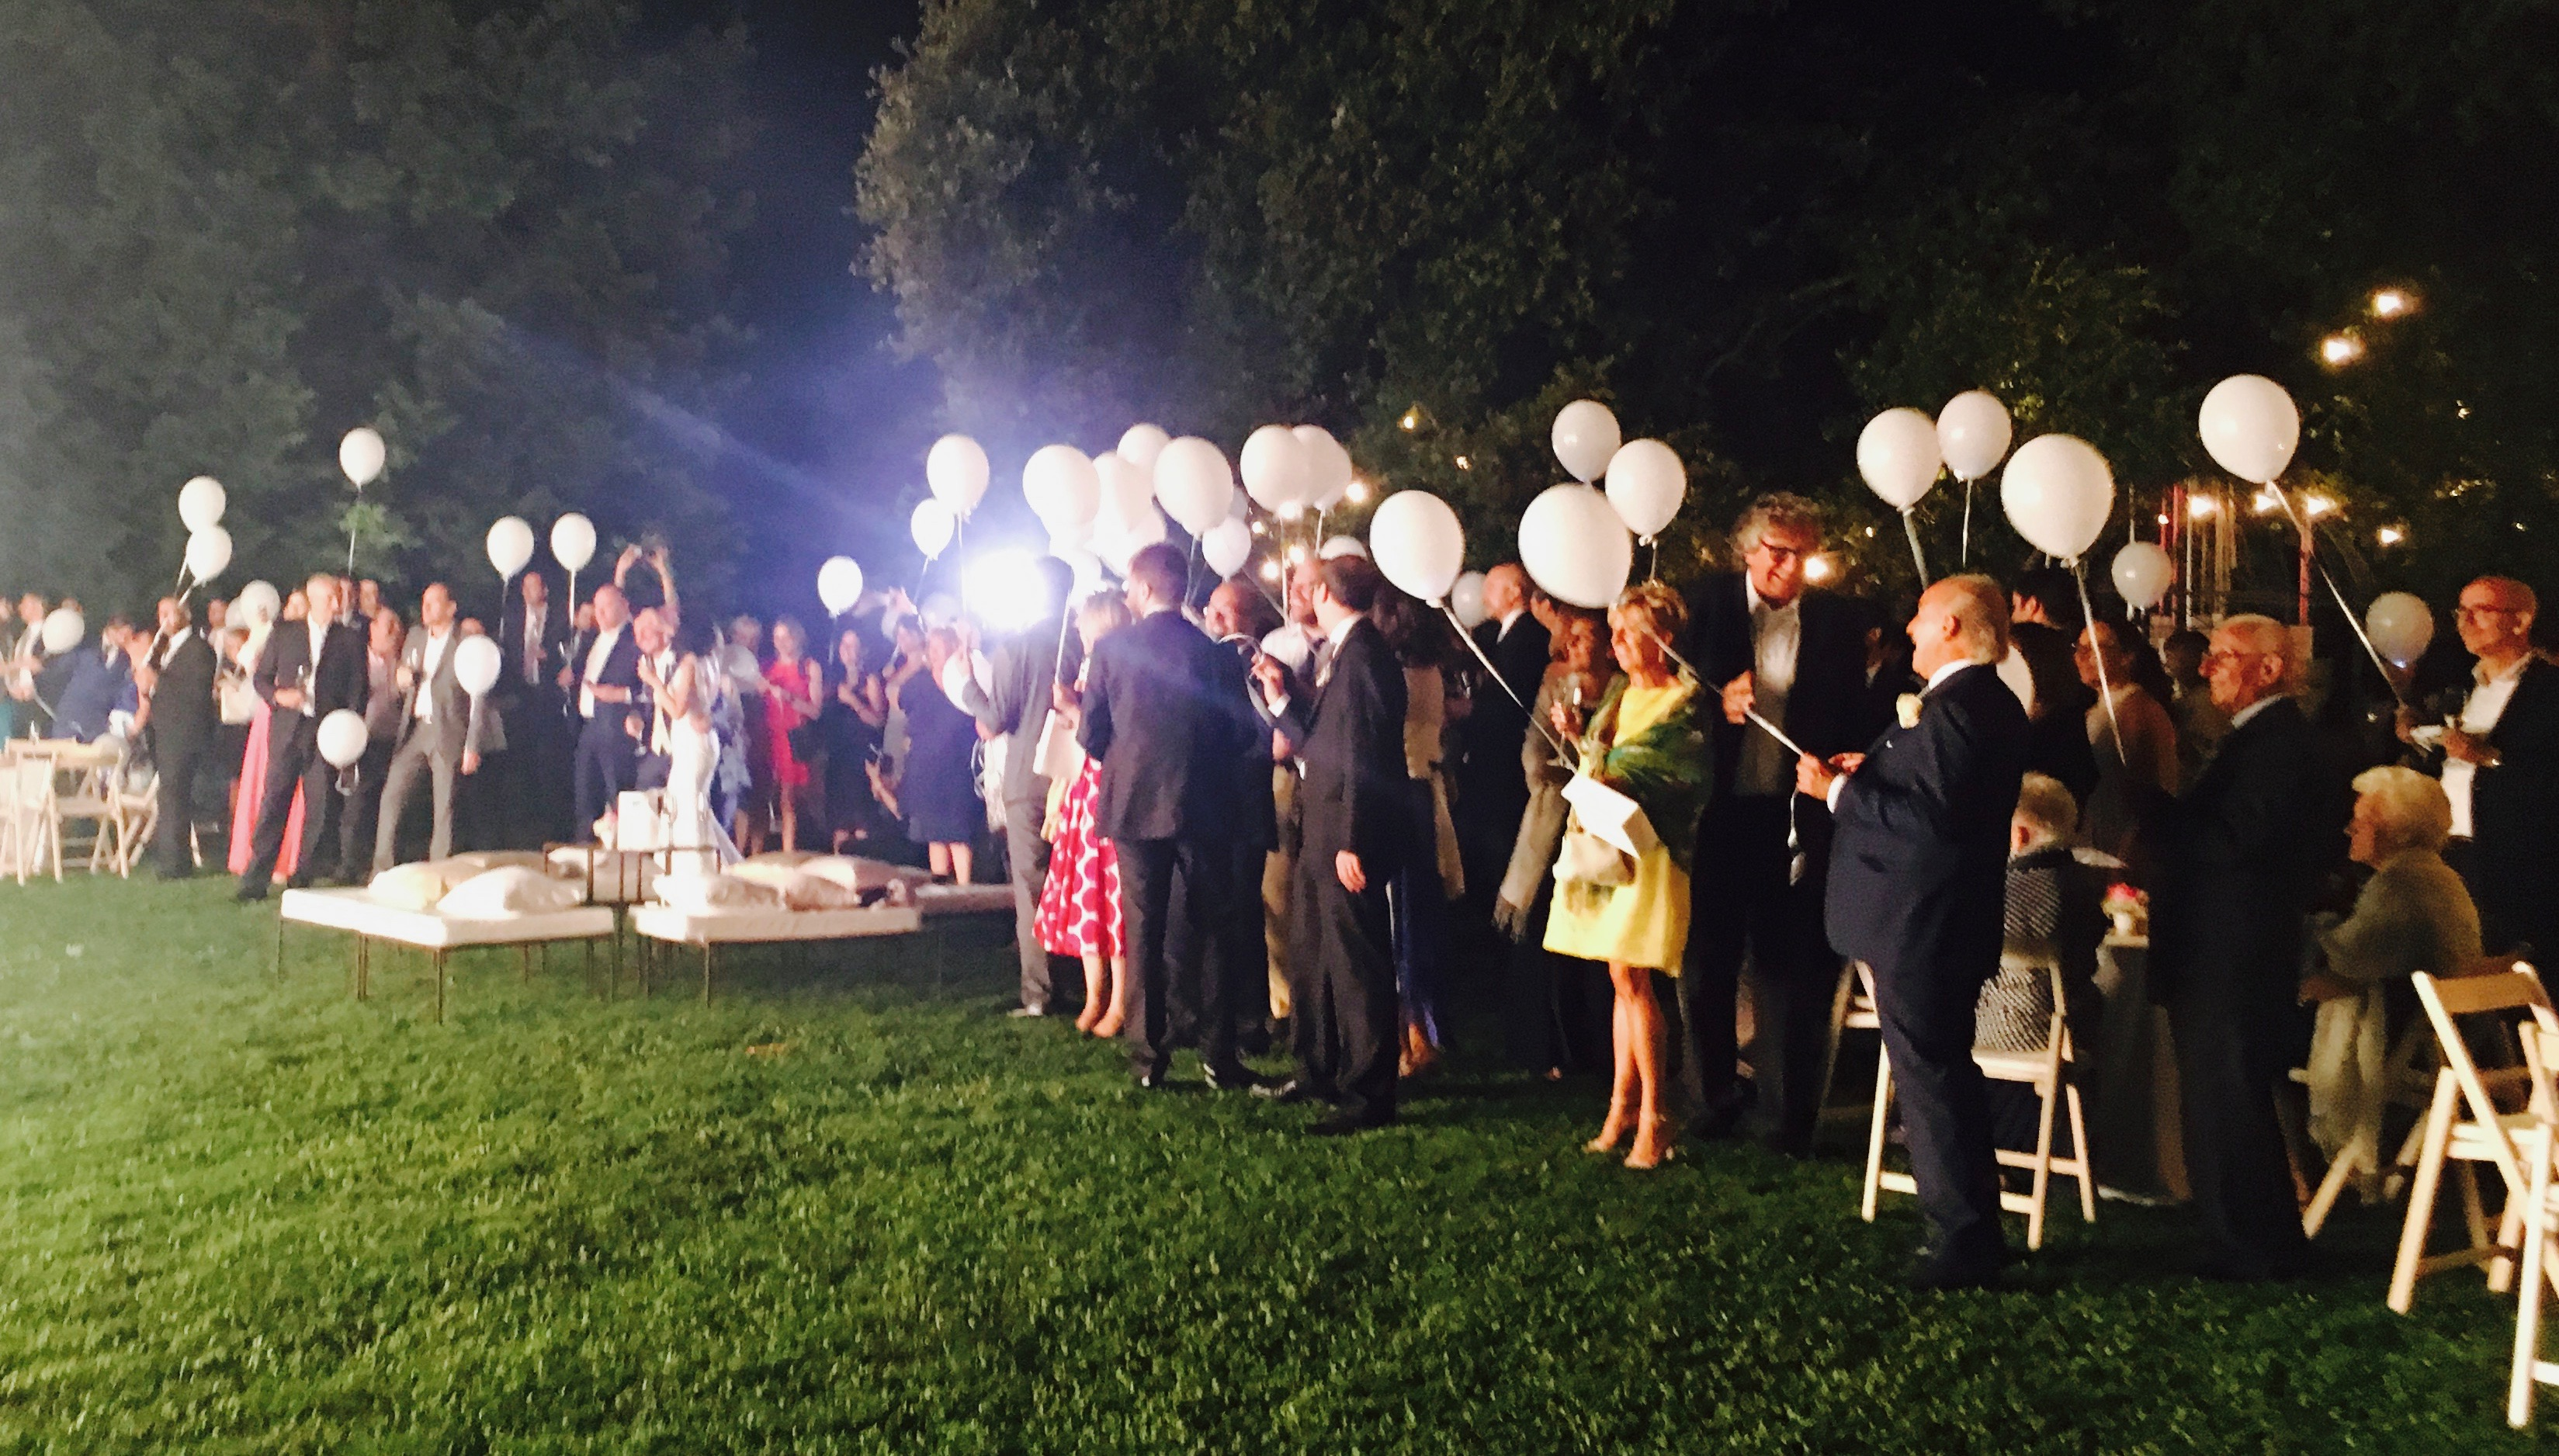 Italian weddinglight balloons launch